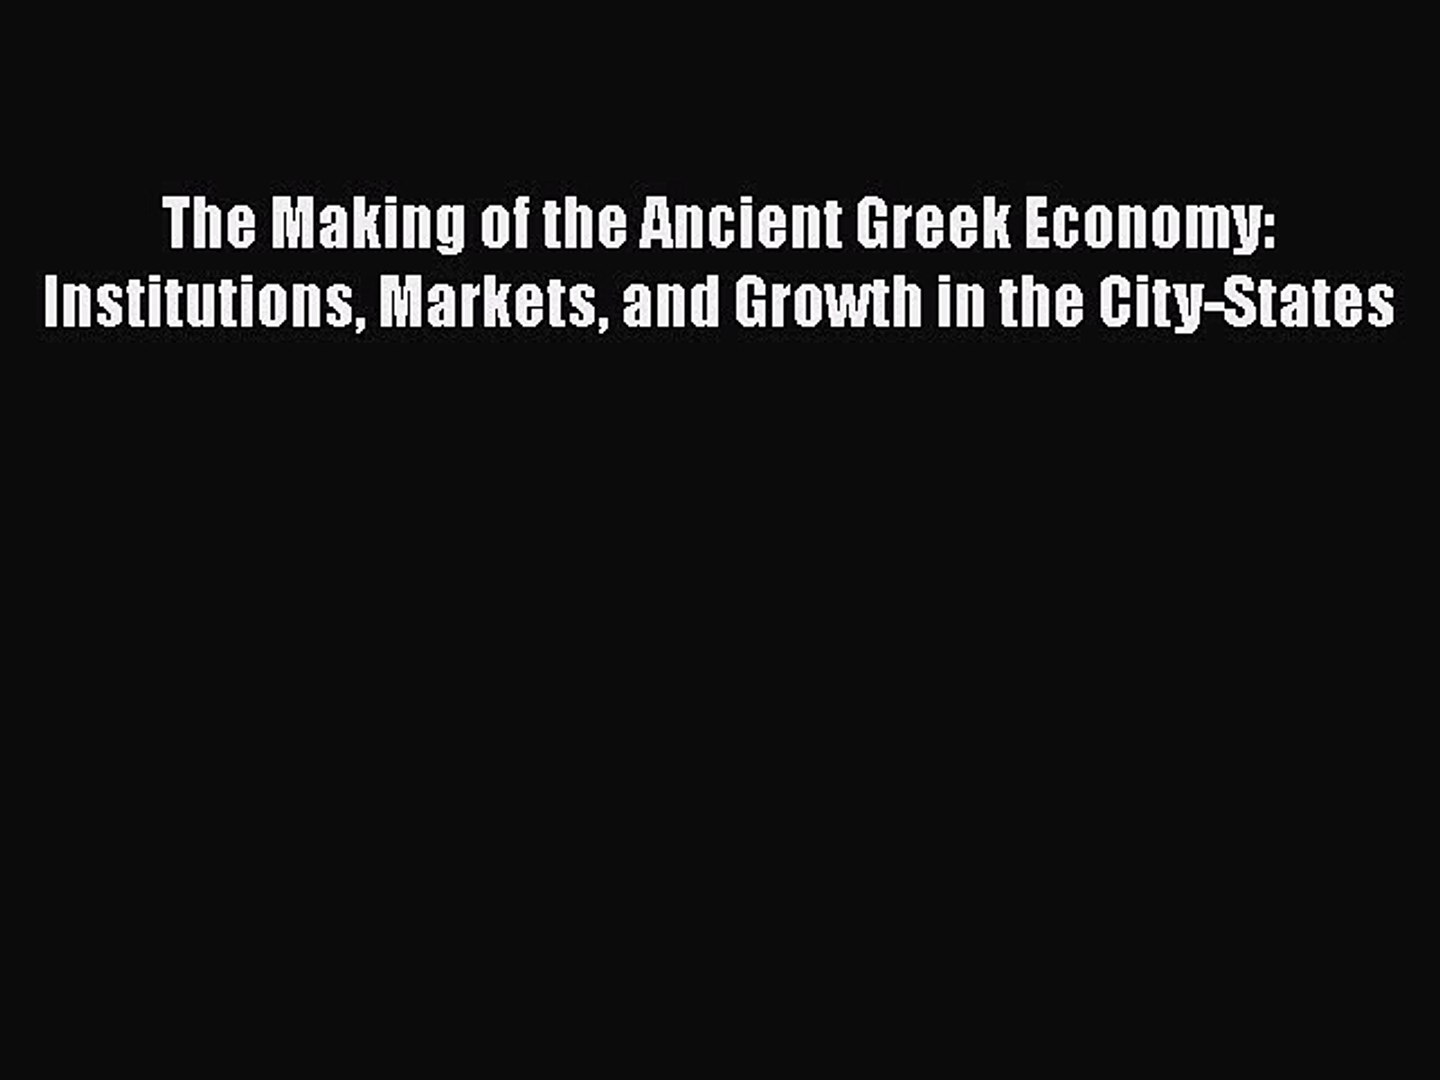 [PDF] The Making of the Ancient Greek Economy: Institutions Markets and Growth in the City-States